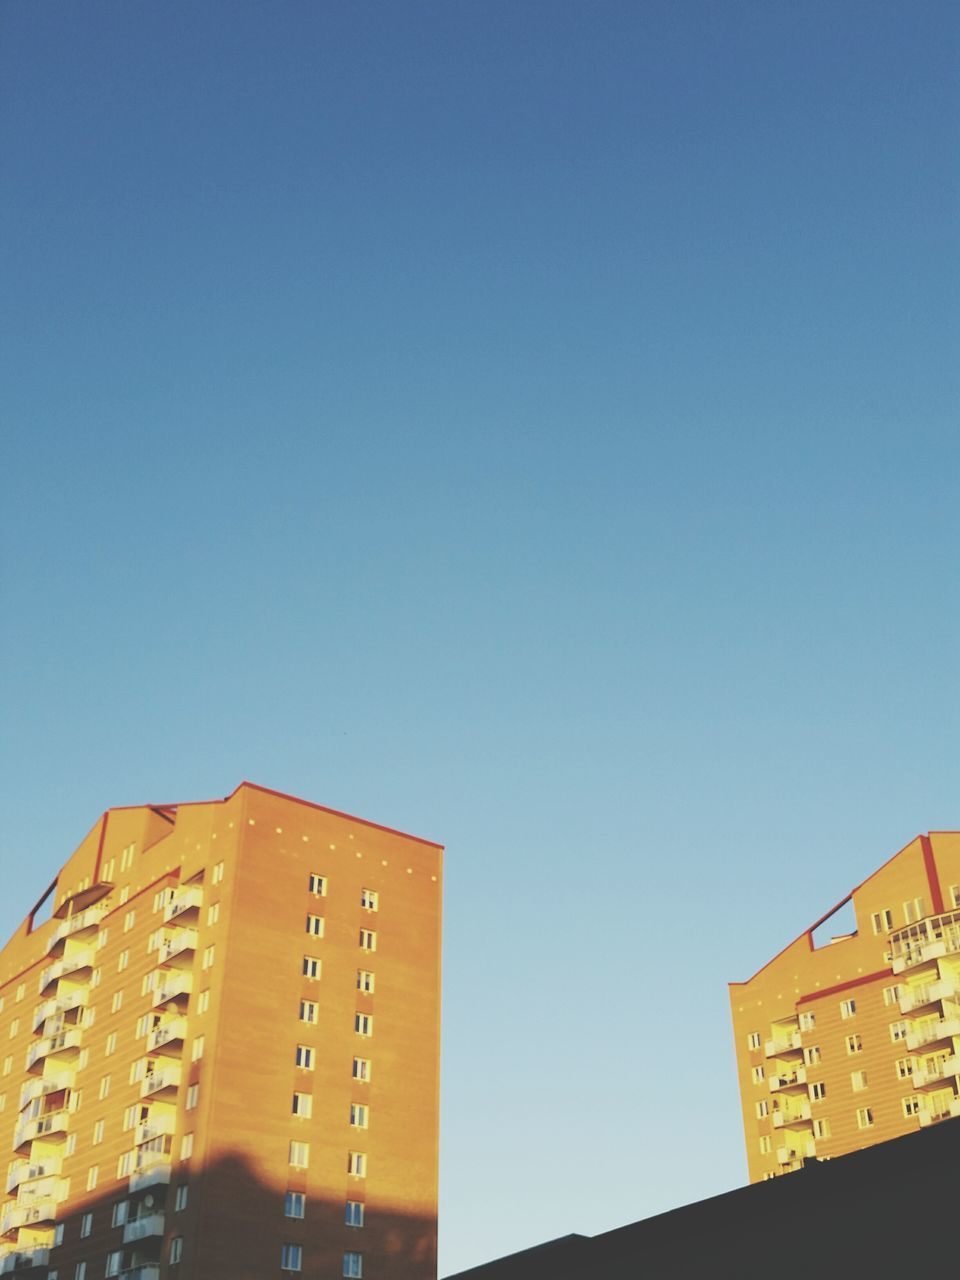 architecture, copy space, clear sky, building exterior, architectural style, blue, city, no people, modern, outdoors, day